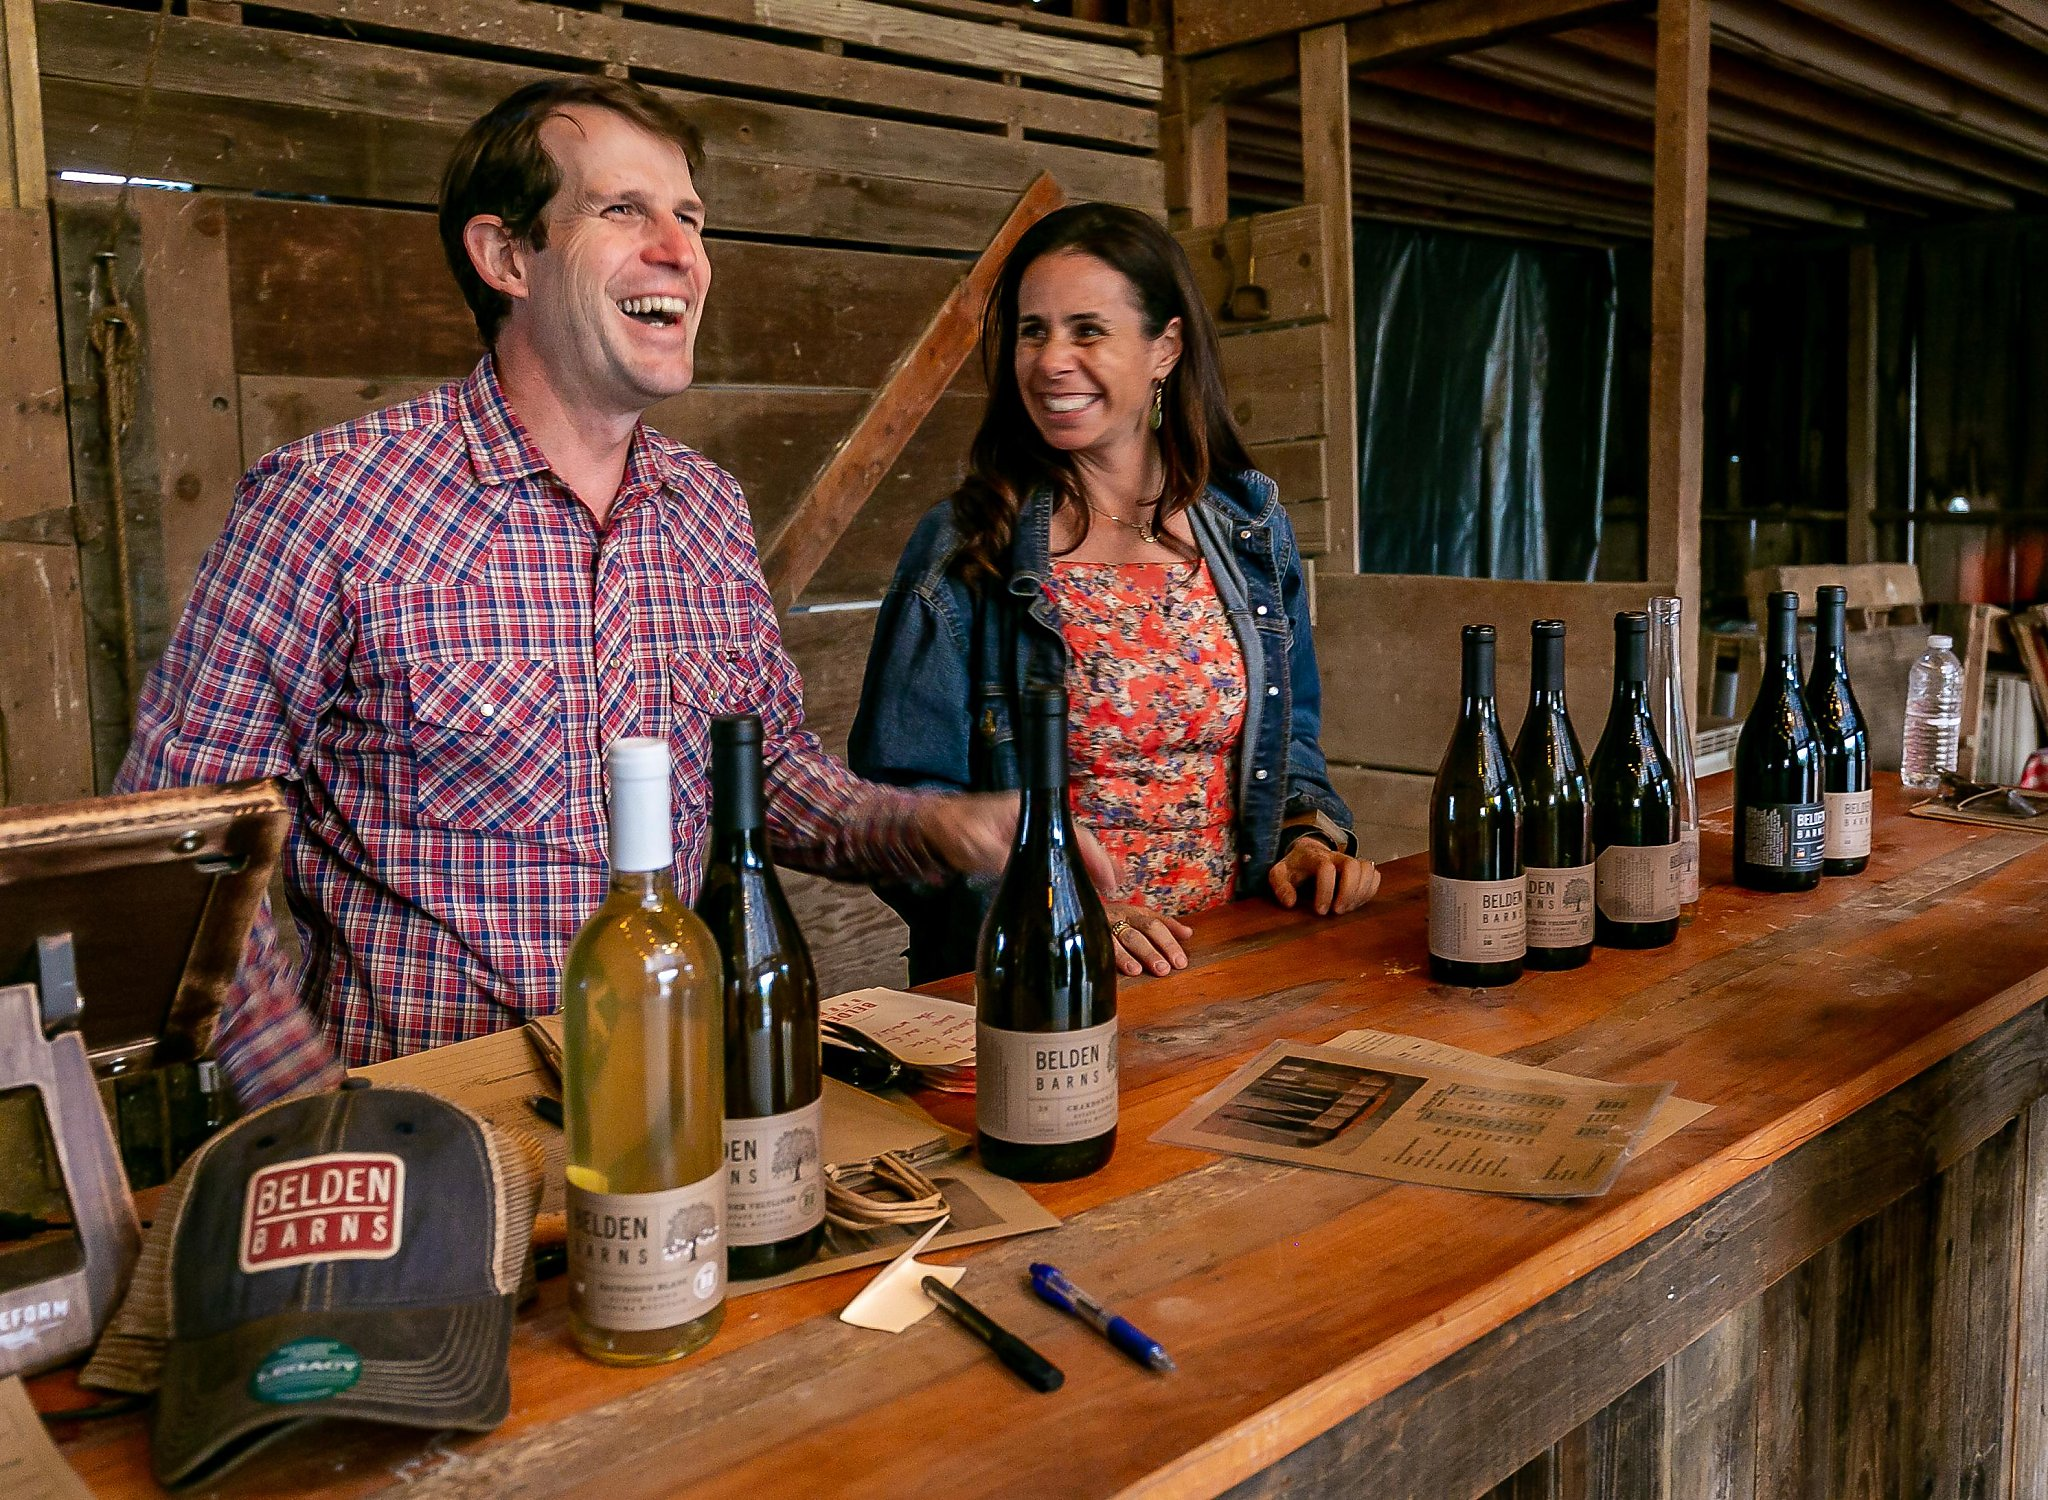 Belden Barns: An Exclusive Wine Tasting For Sonoma Pinot photo